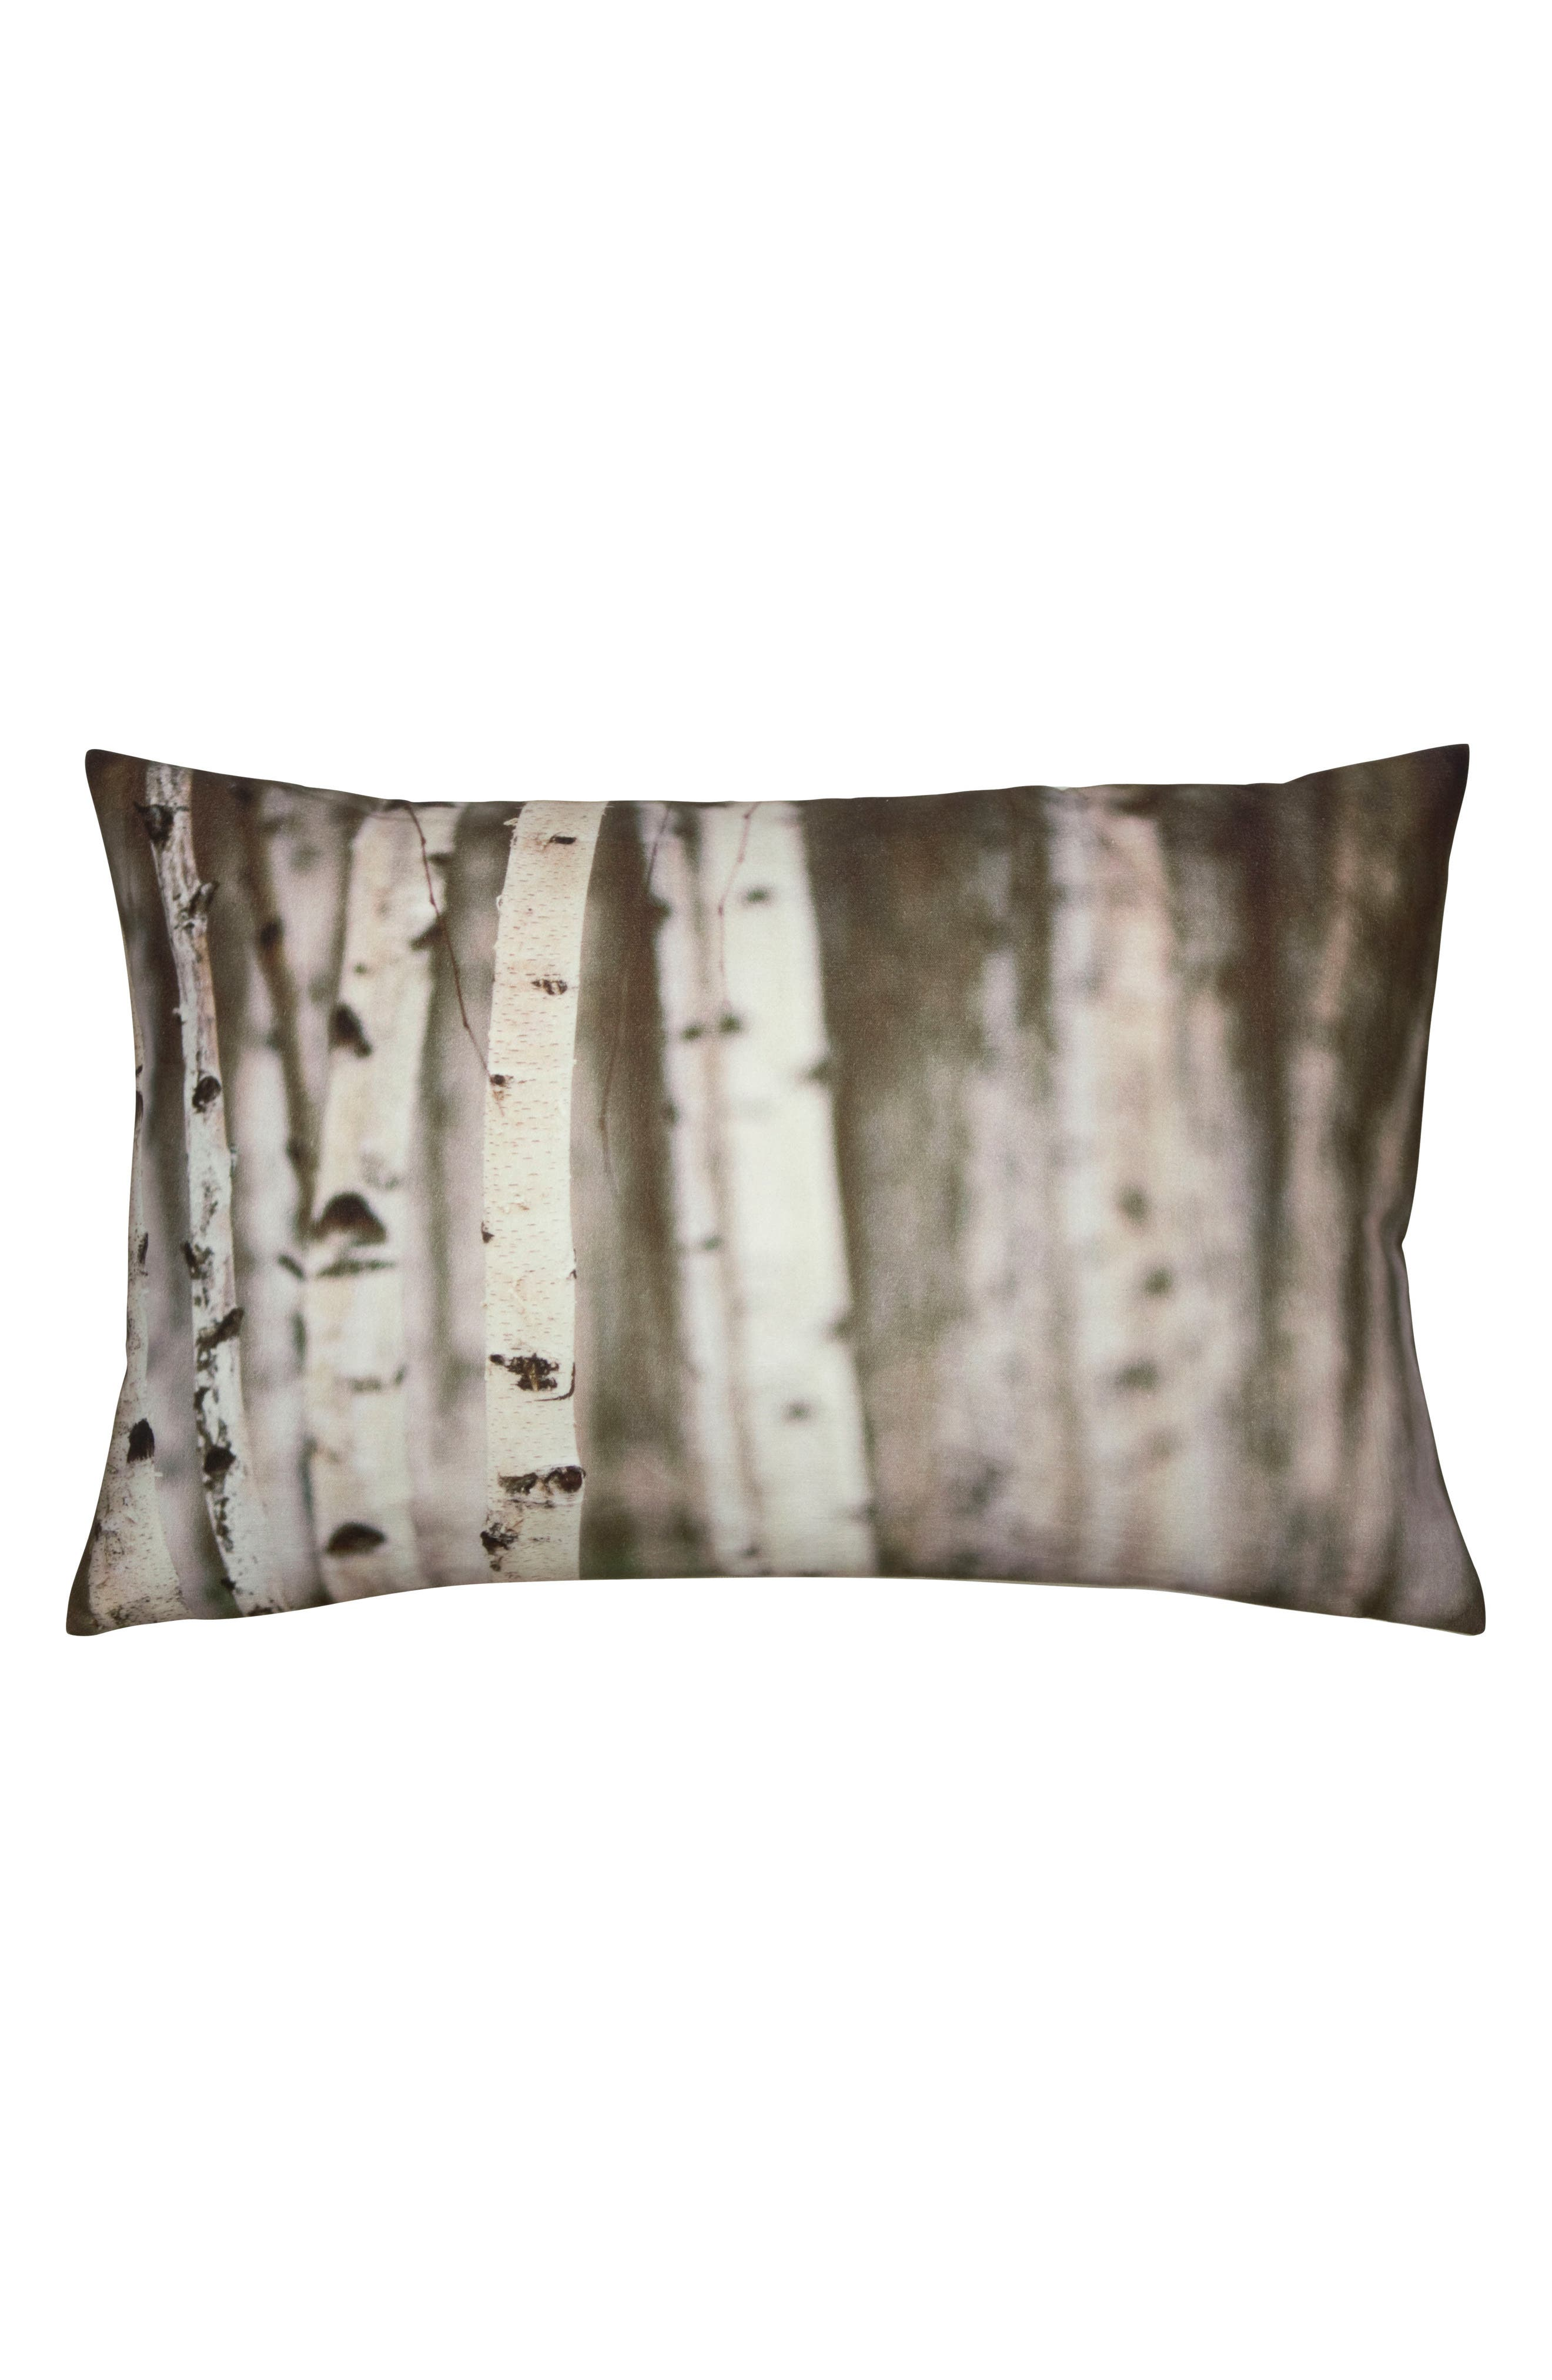 Birch Accent Pillow,                         Main,                         color, White/ Brown